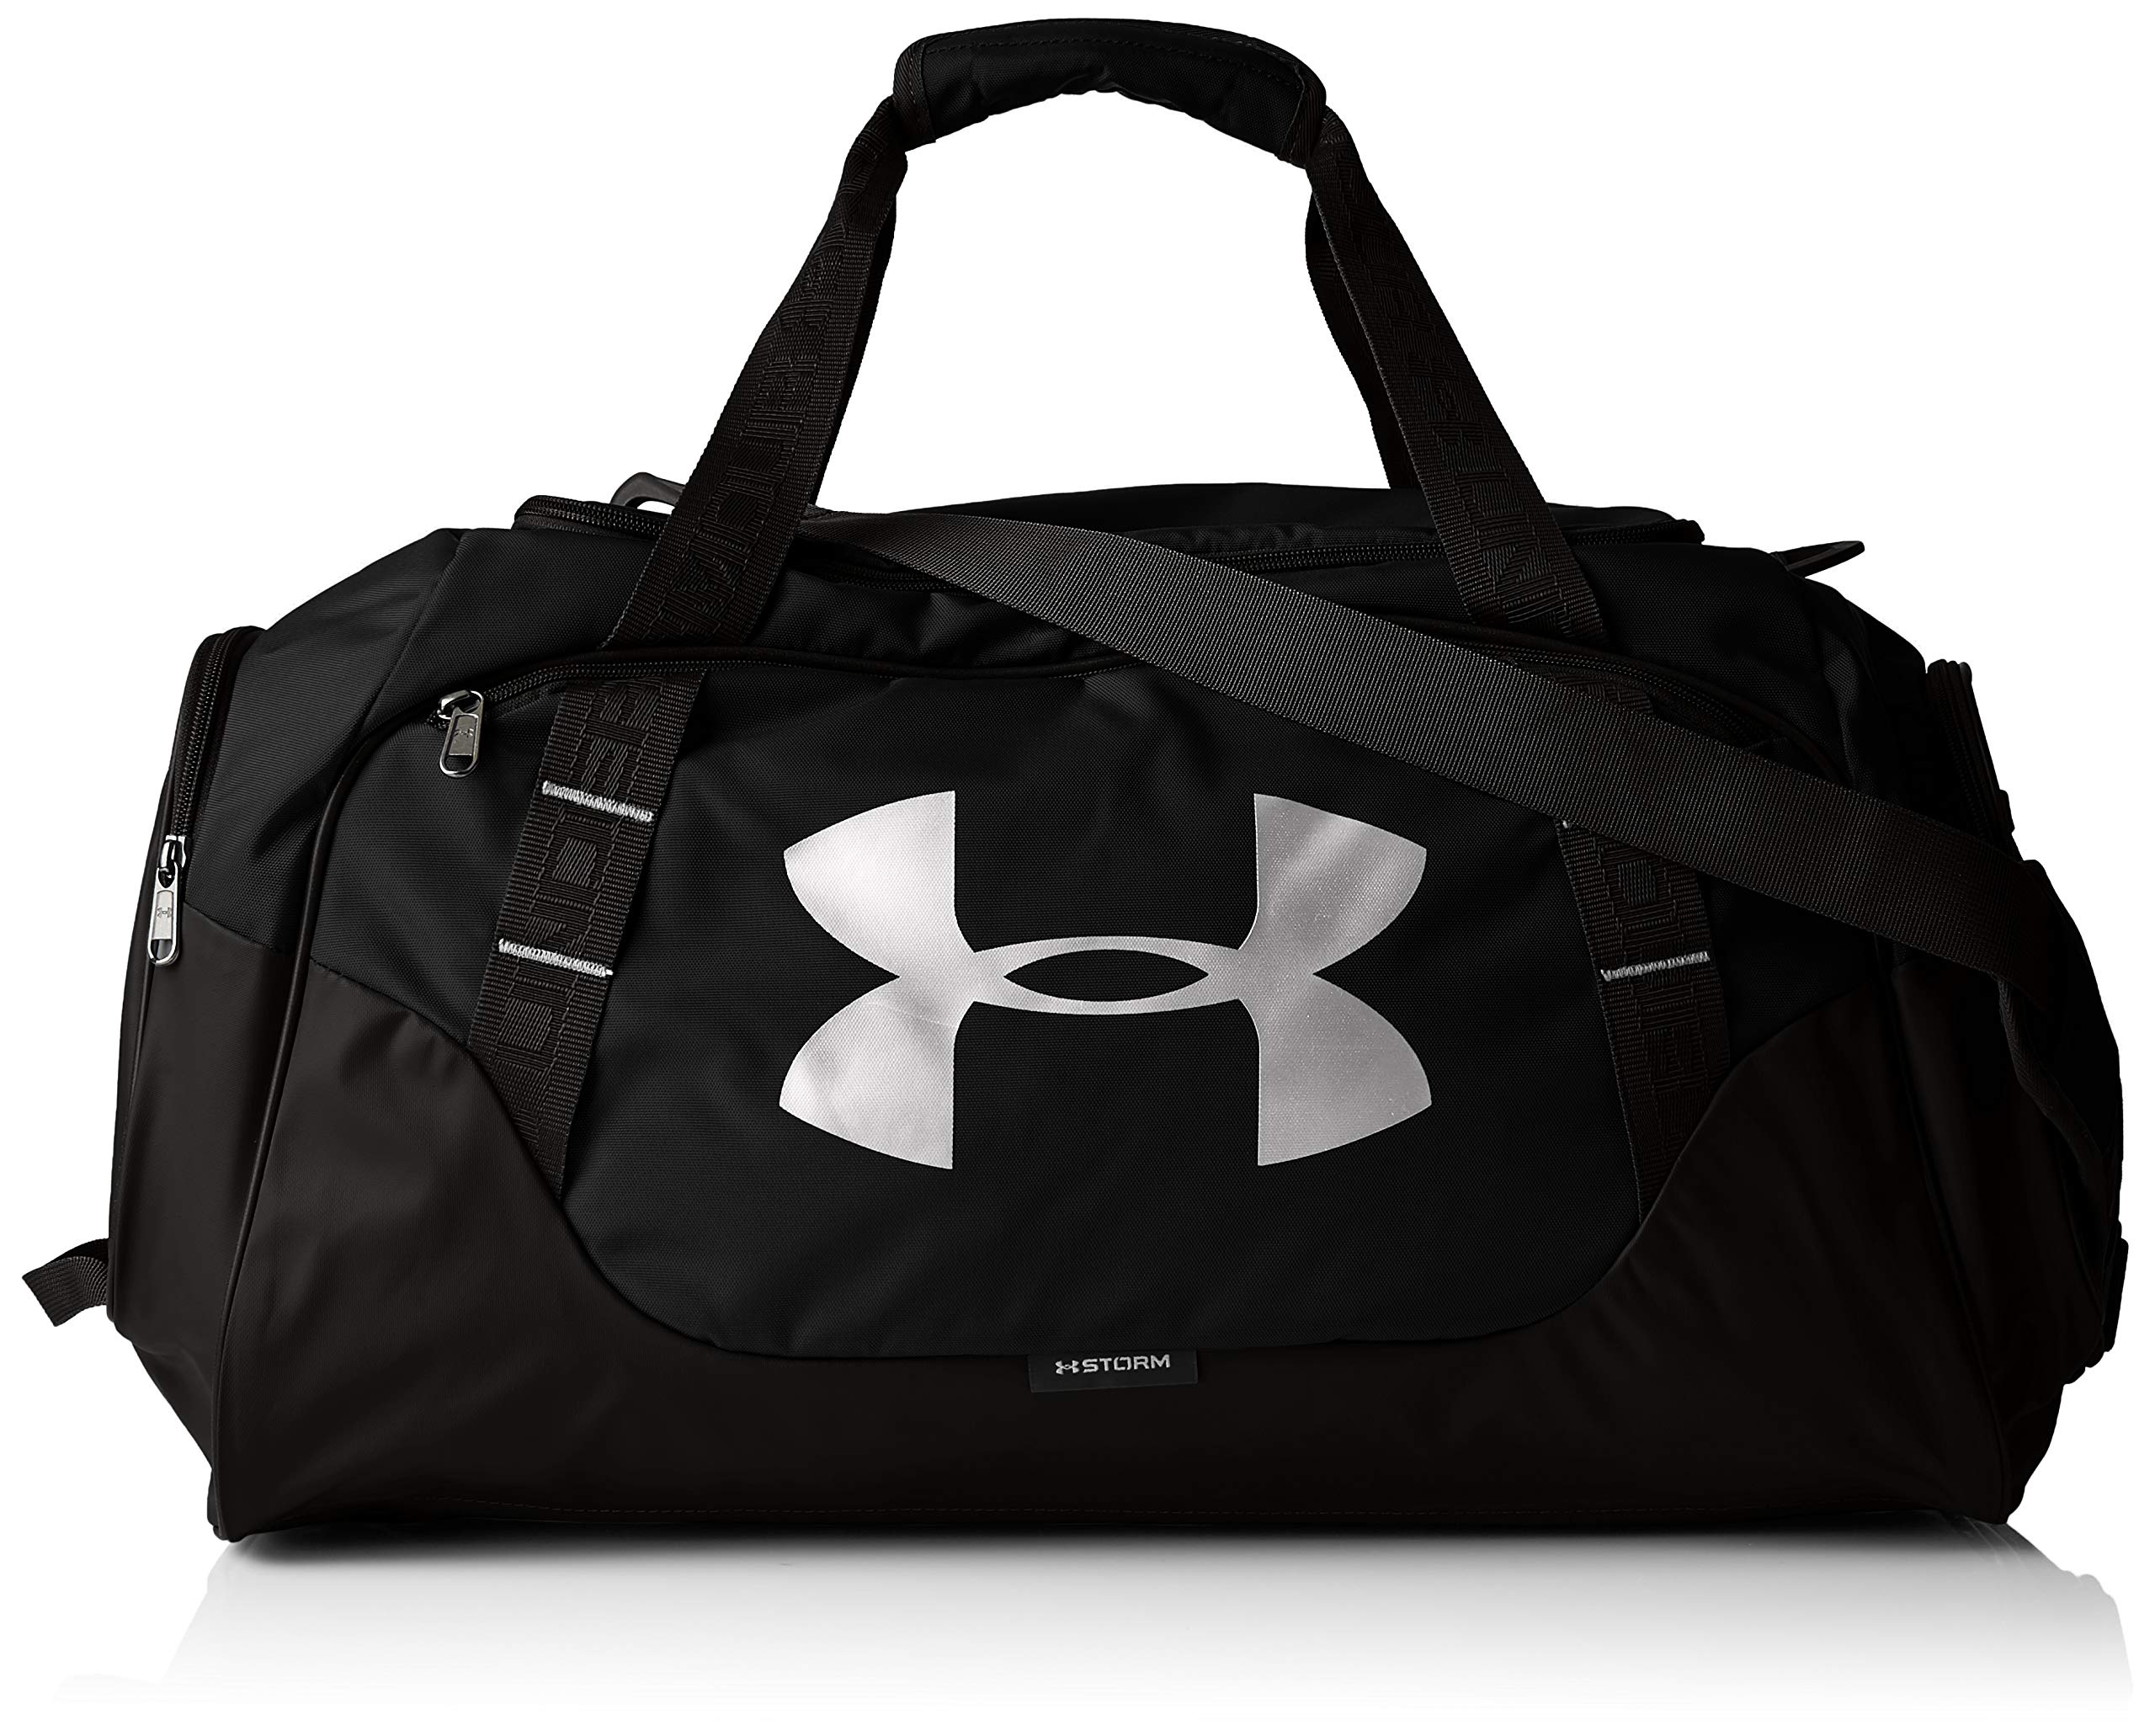 Under Armour Undeniable Duffle 3.0 Gym Bag, Black (001)/Silver, X-Large by Under Armour